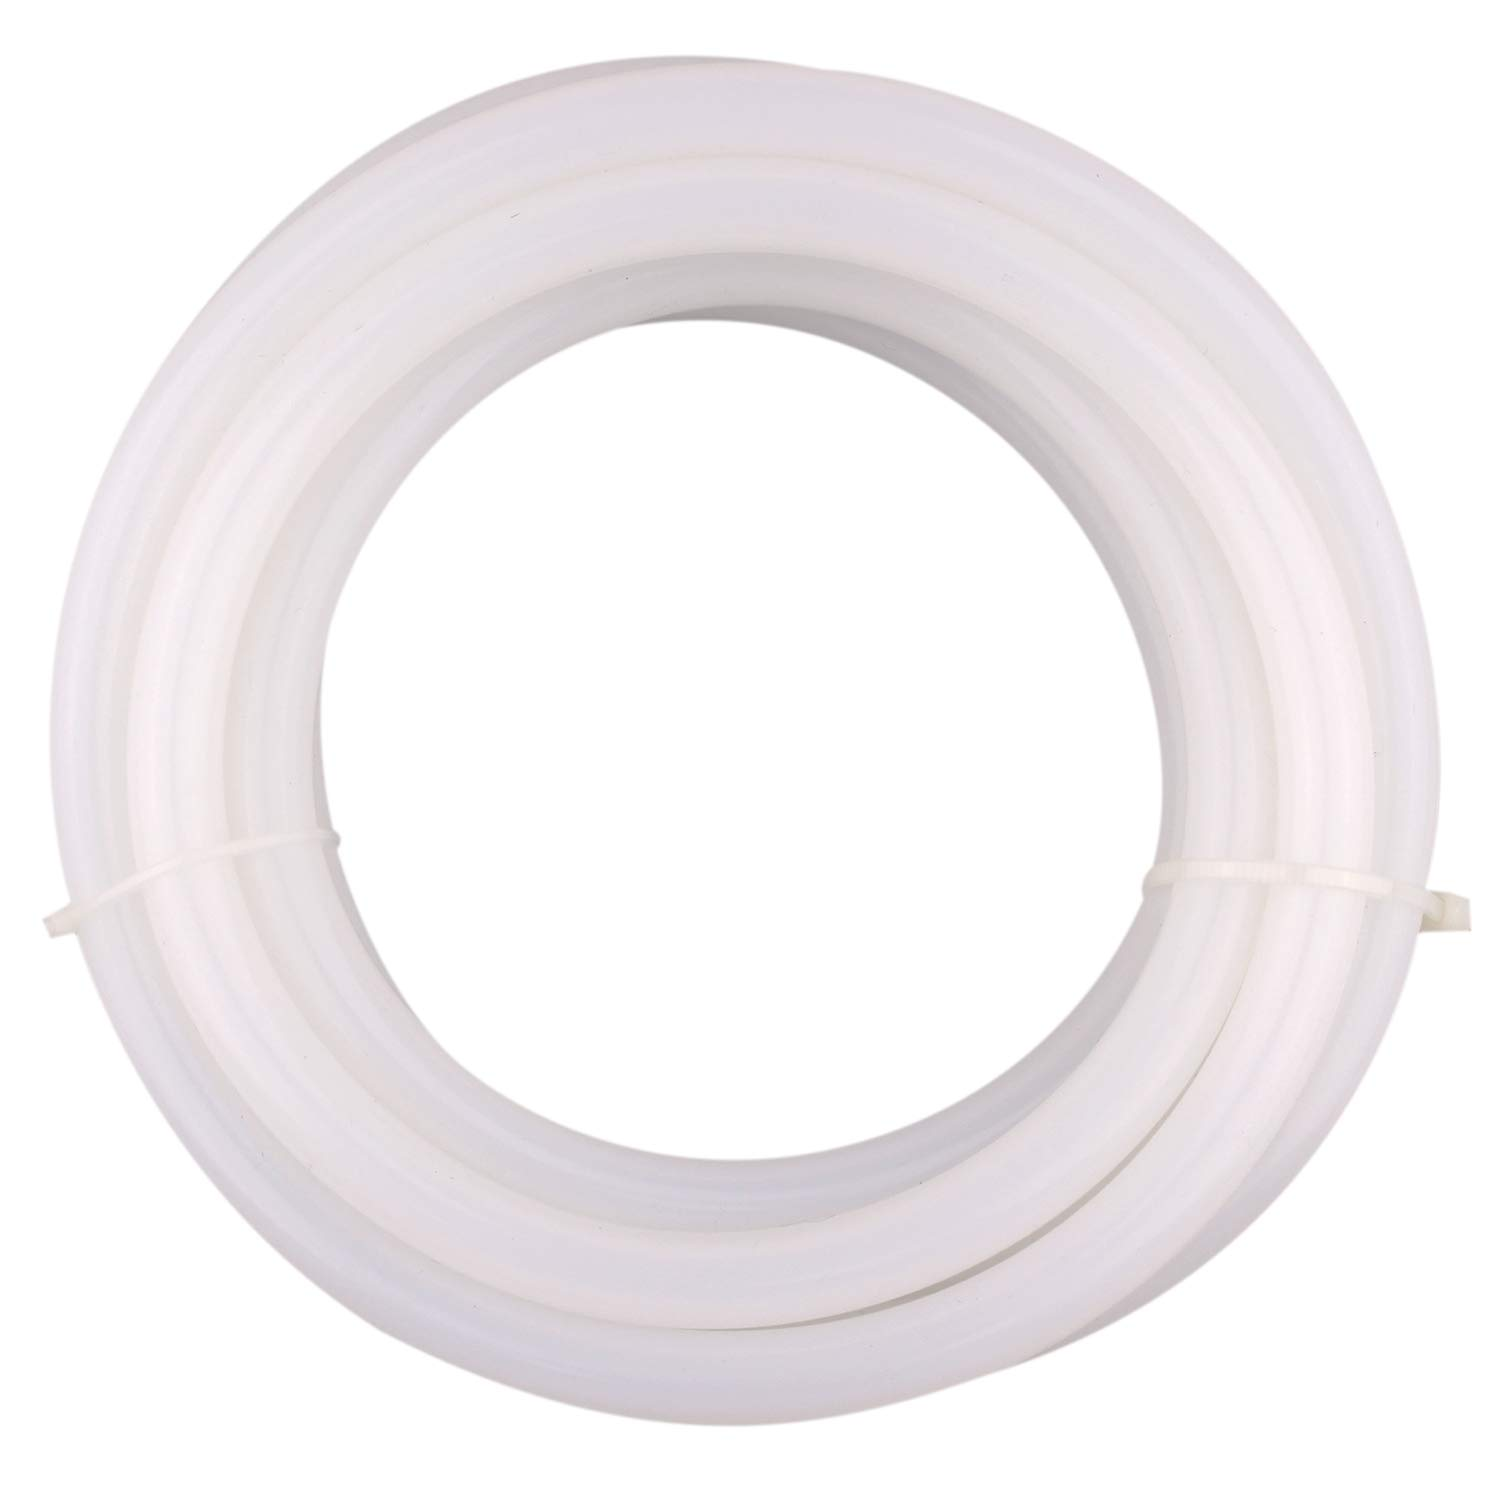 DERPIPE Silicone Tubing - 1/4'' ID 1/2''OD Food Grade Flexible Thick for Homebrewing Pump Transfer 3 Meters(10ft) Length